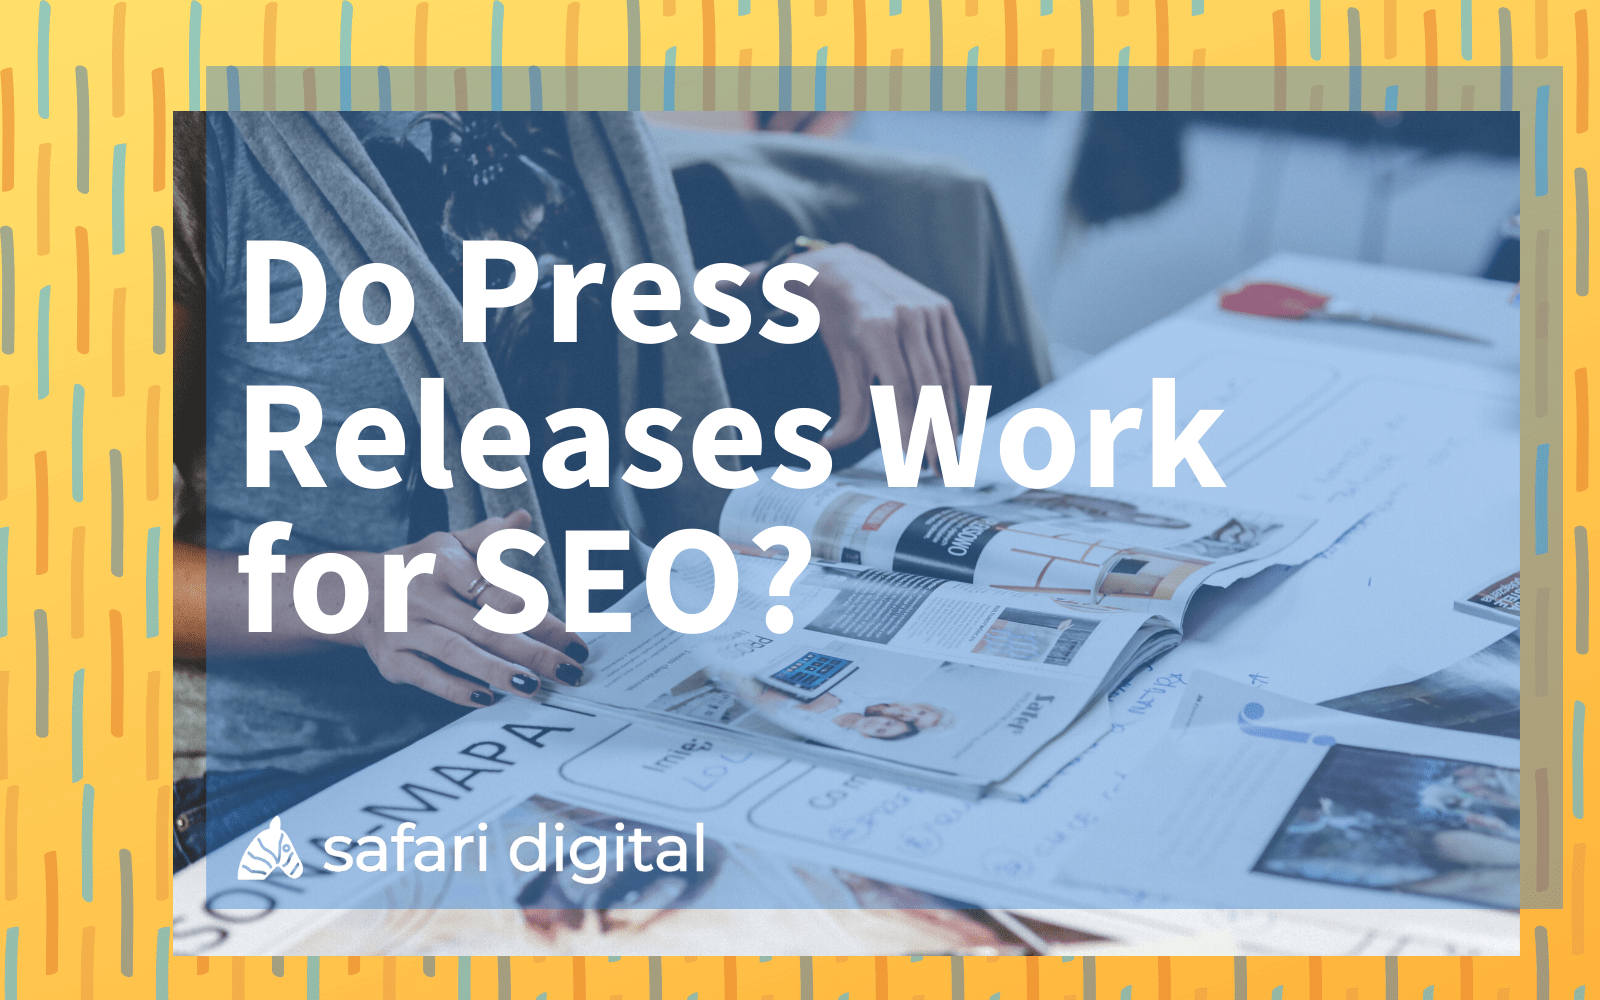 Do Press Releases Work for SEO cover image